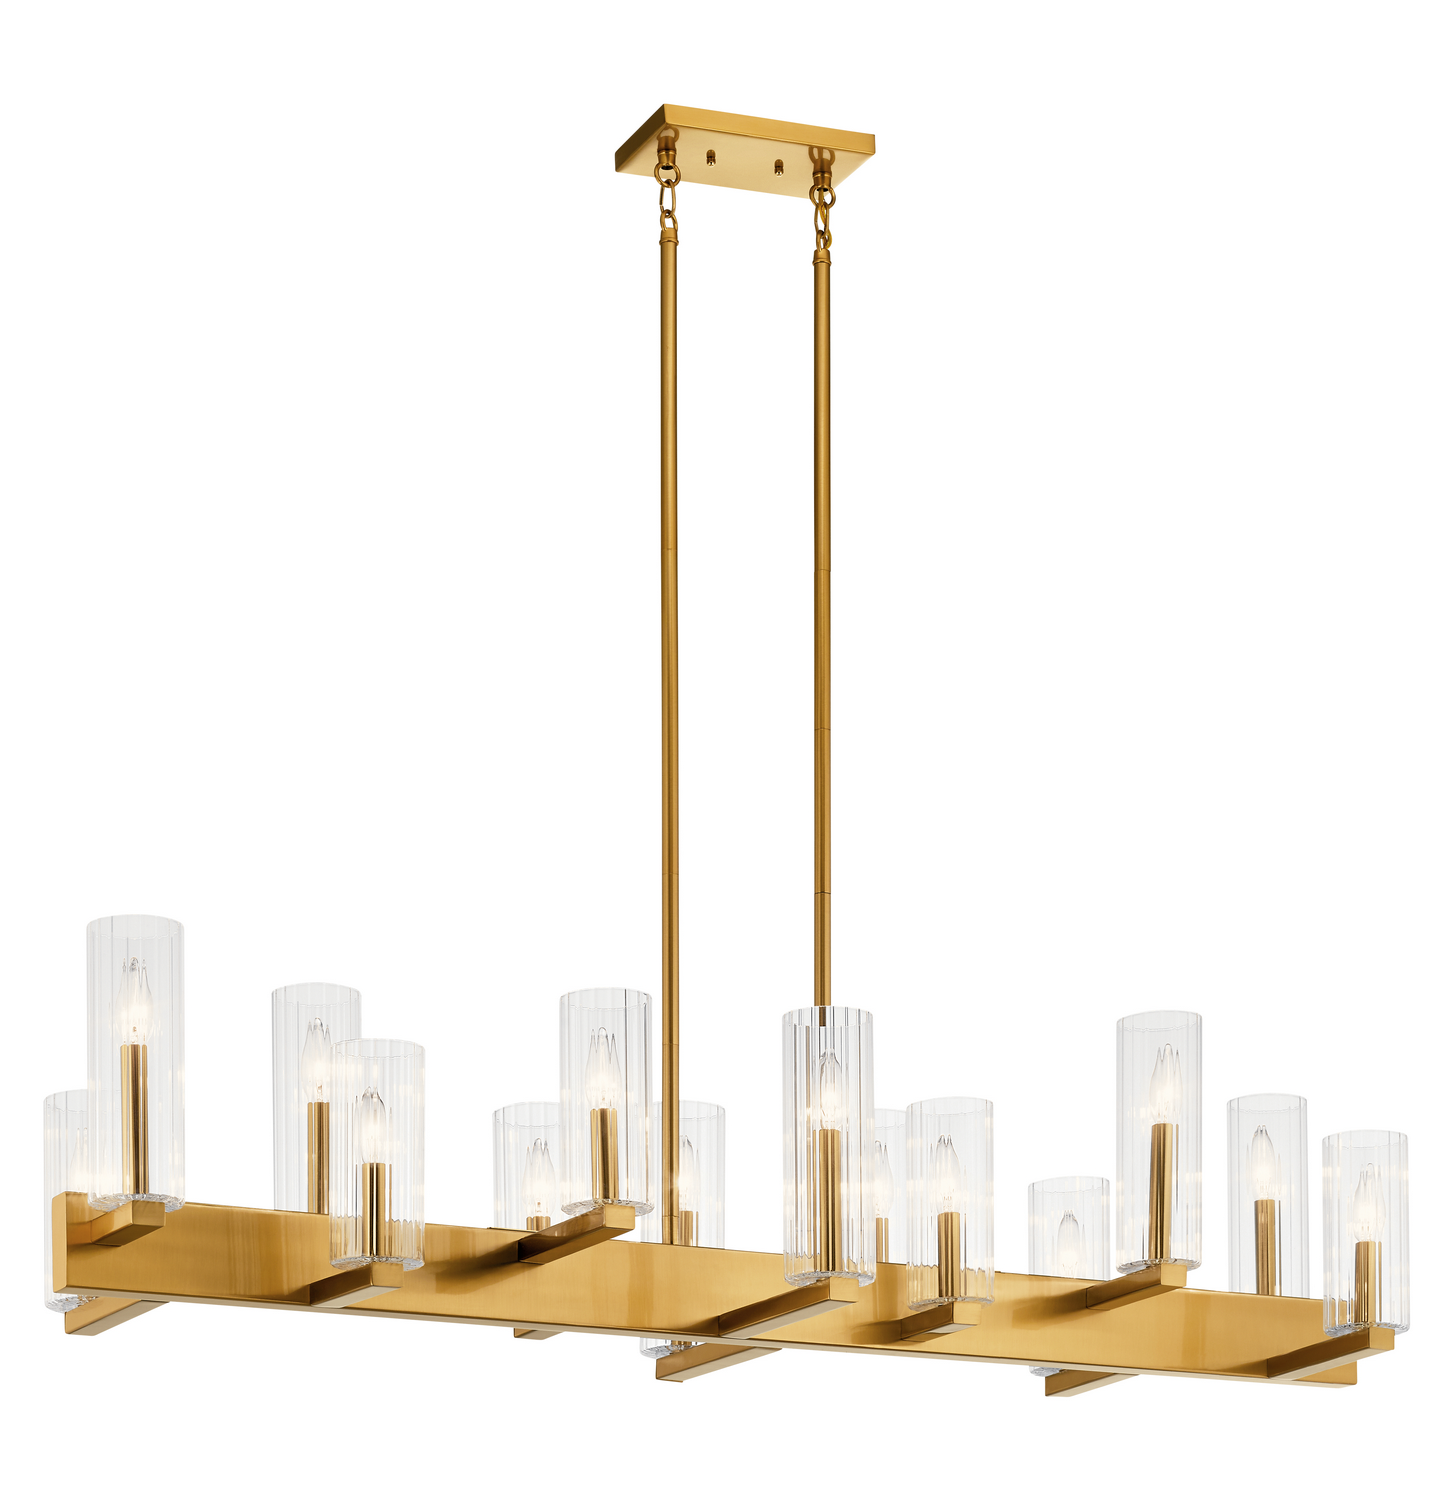 14 Light Linear Chandelier from the Cleara collection by Kichler 44317FXG